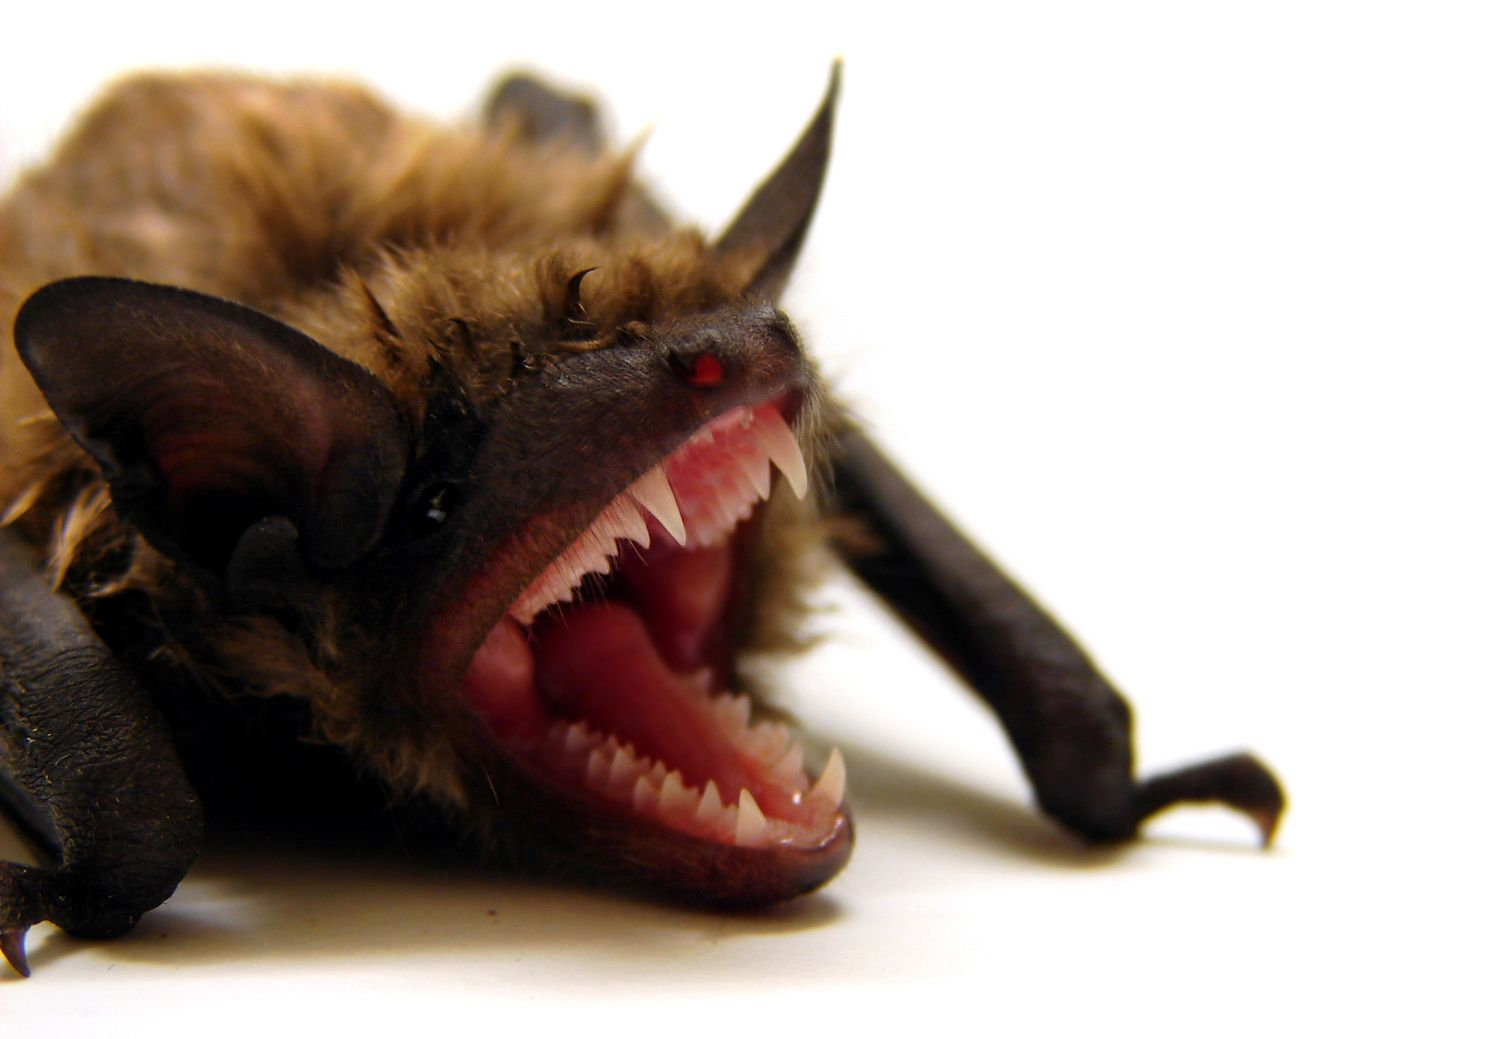 A single colony of 150 big brown bats can protect local farmers from up to 33 million or more rootworms each summer. www.floridawildlifebusters.com